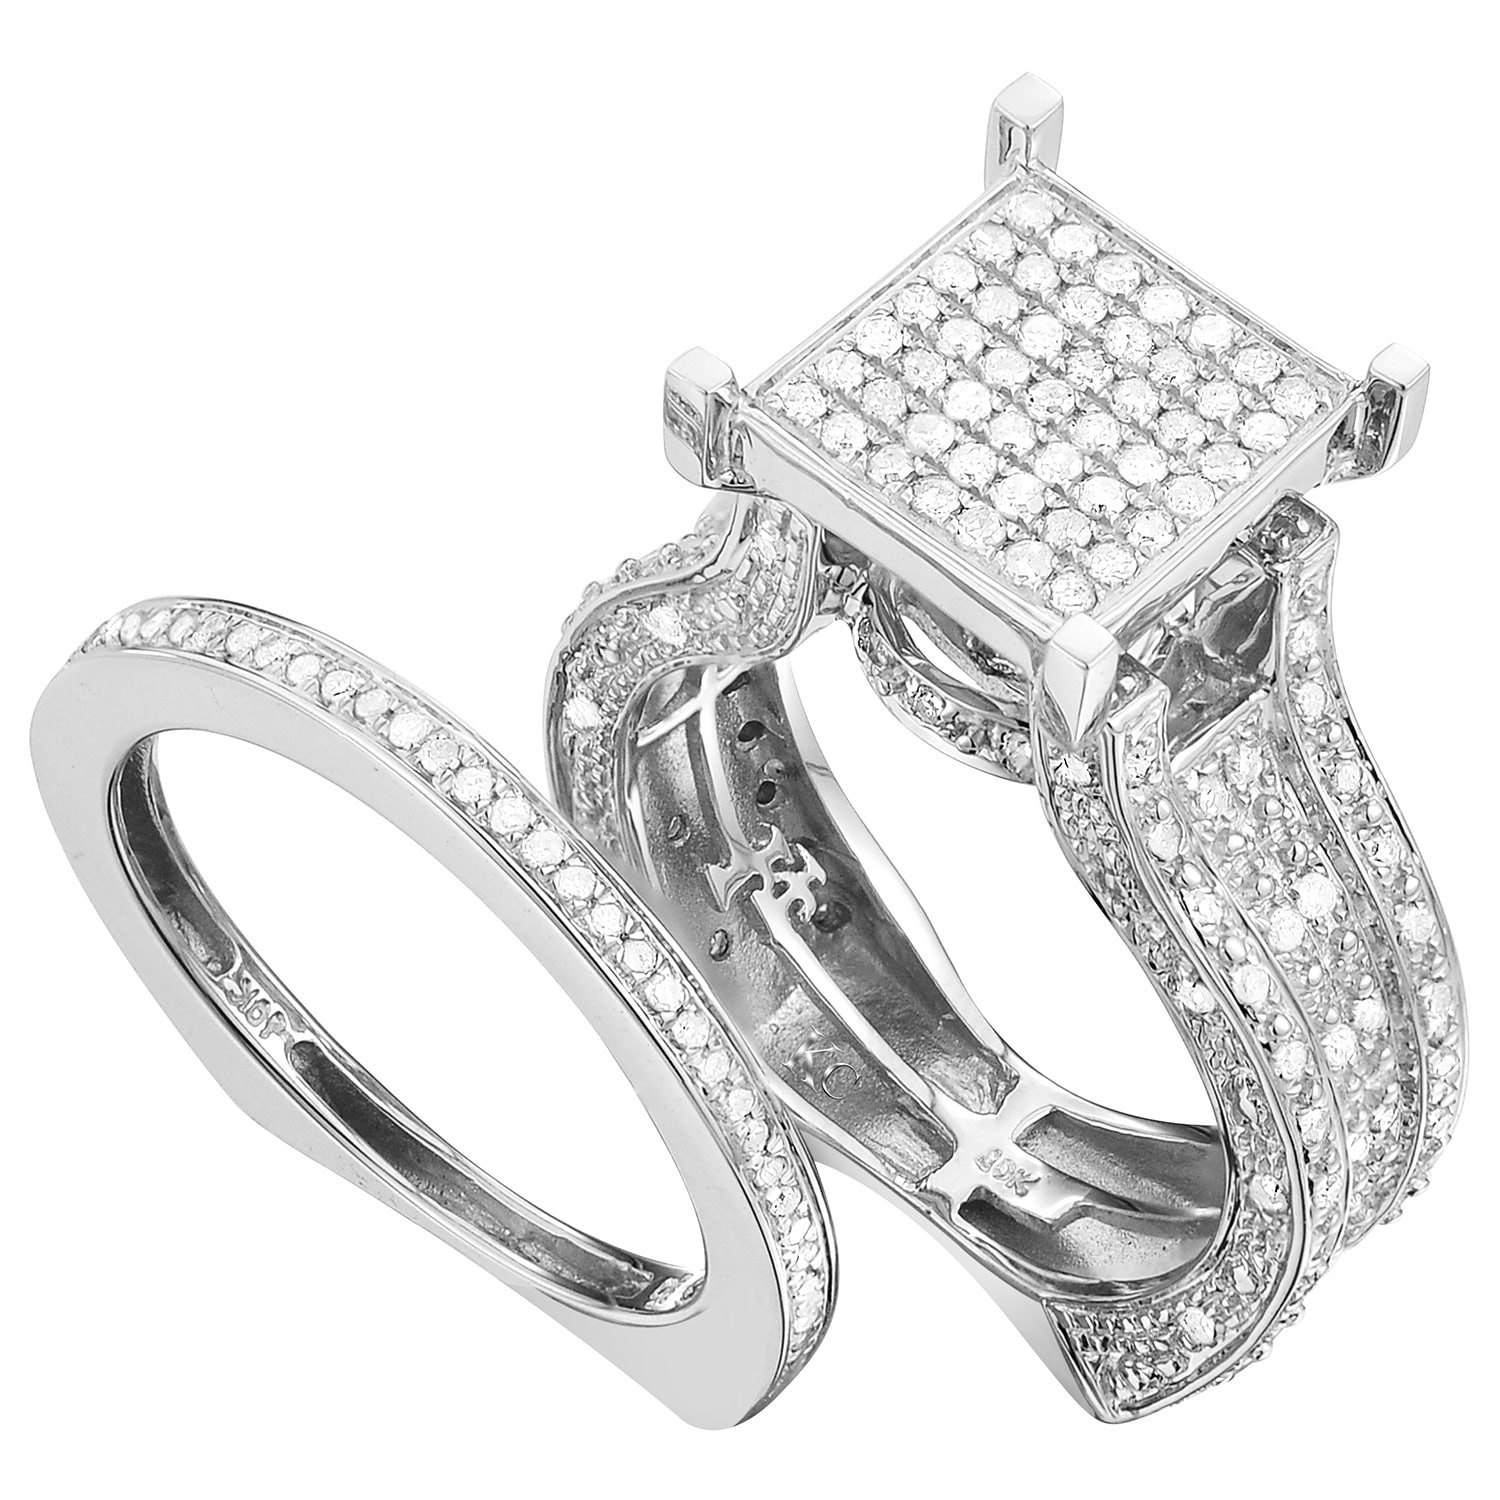 rings amazon com ctw baguette gold round white wedding diamond in pin band